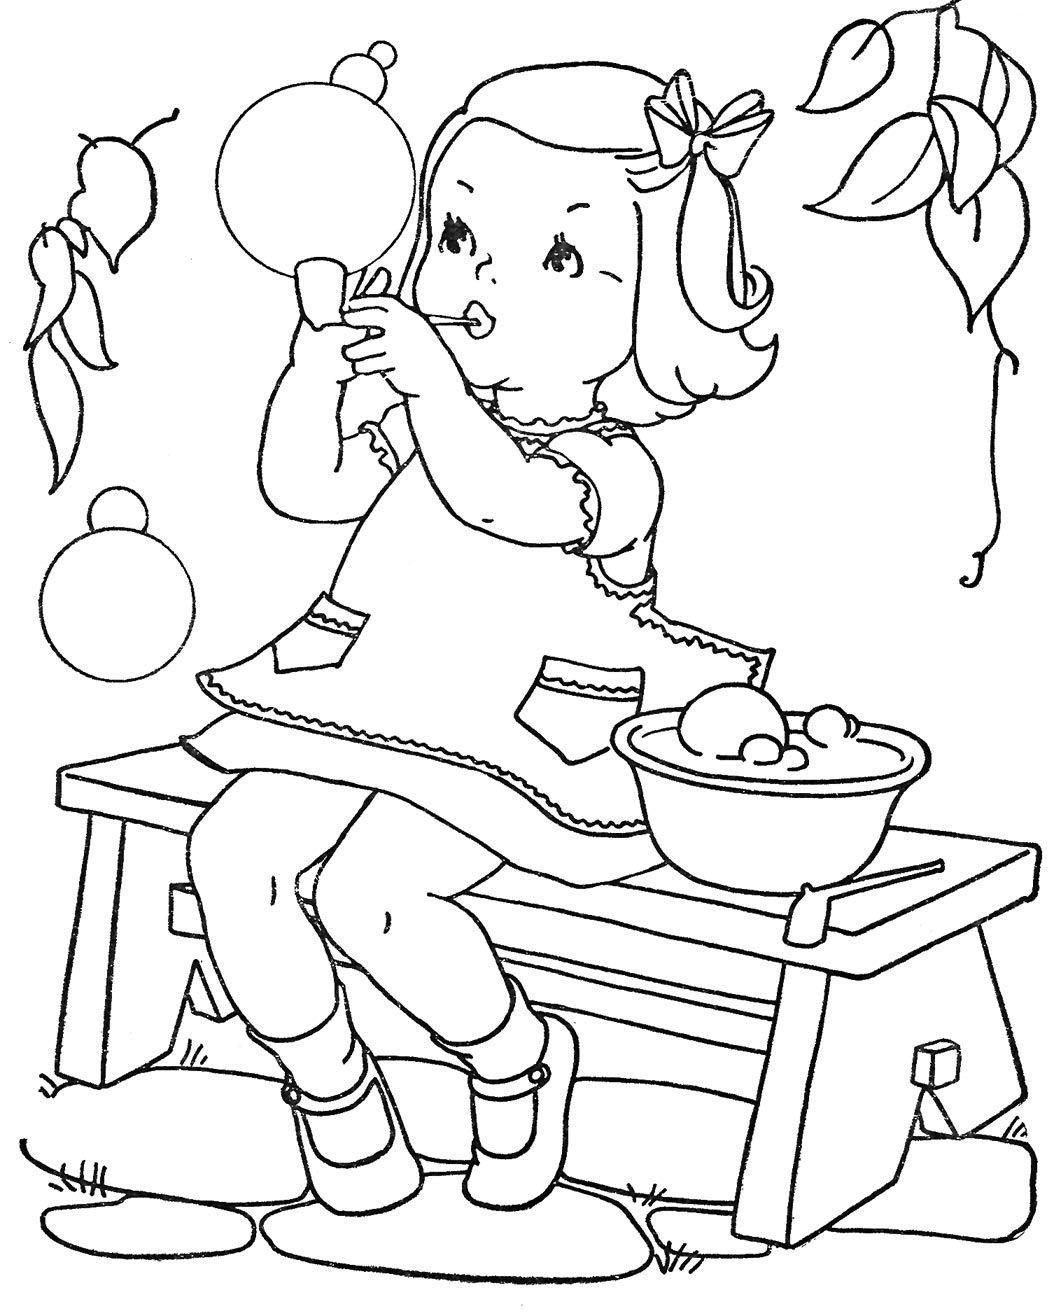 20 Vintage Coloring Book Images - Free to print! Maybe use for ...